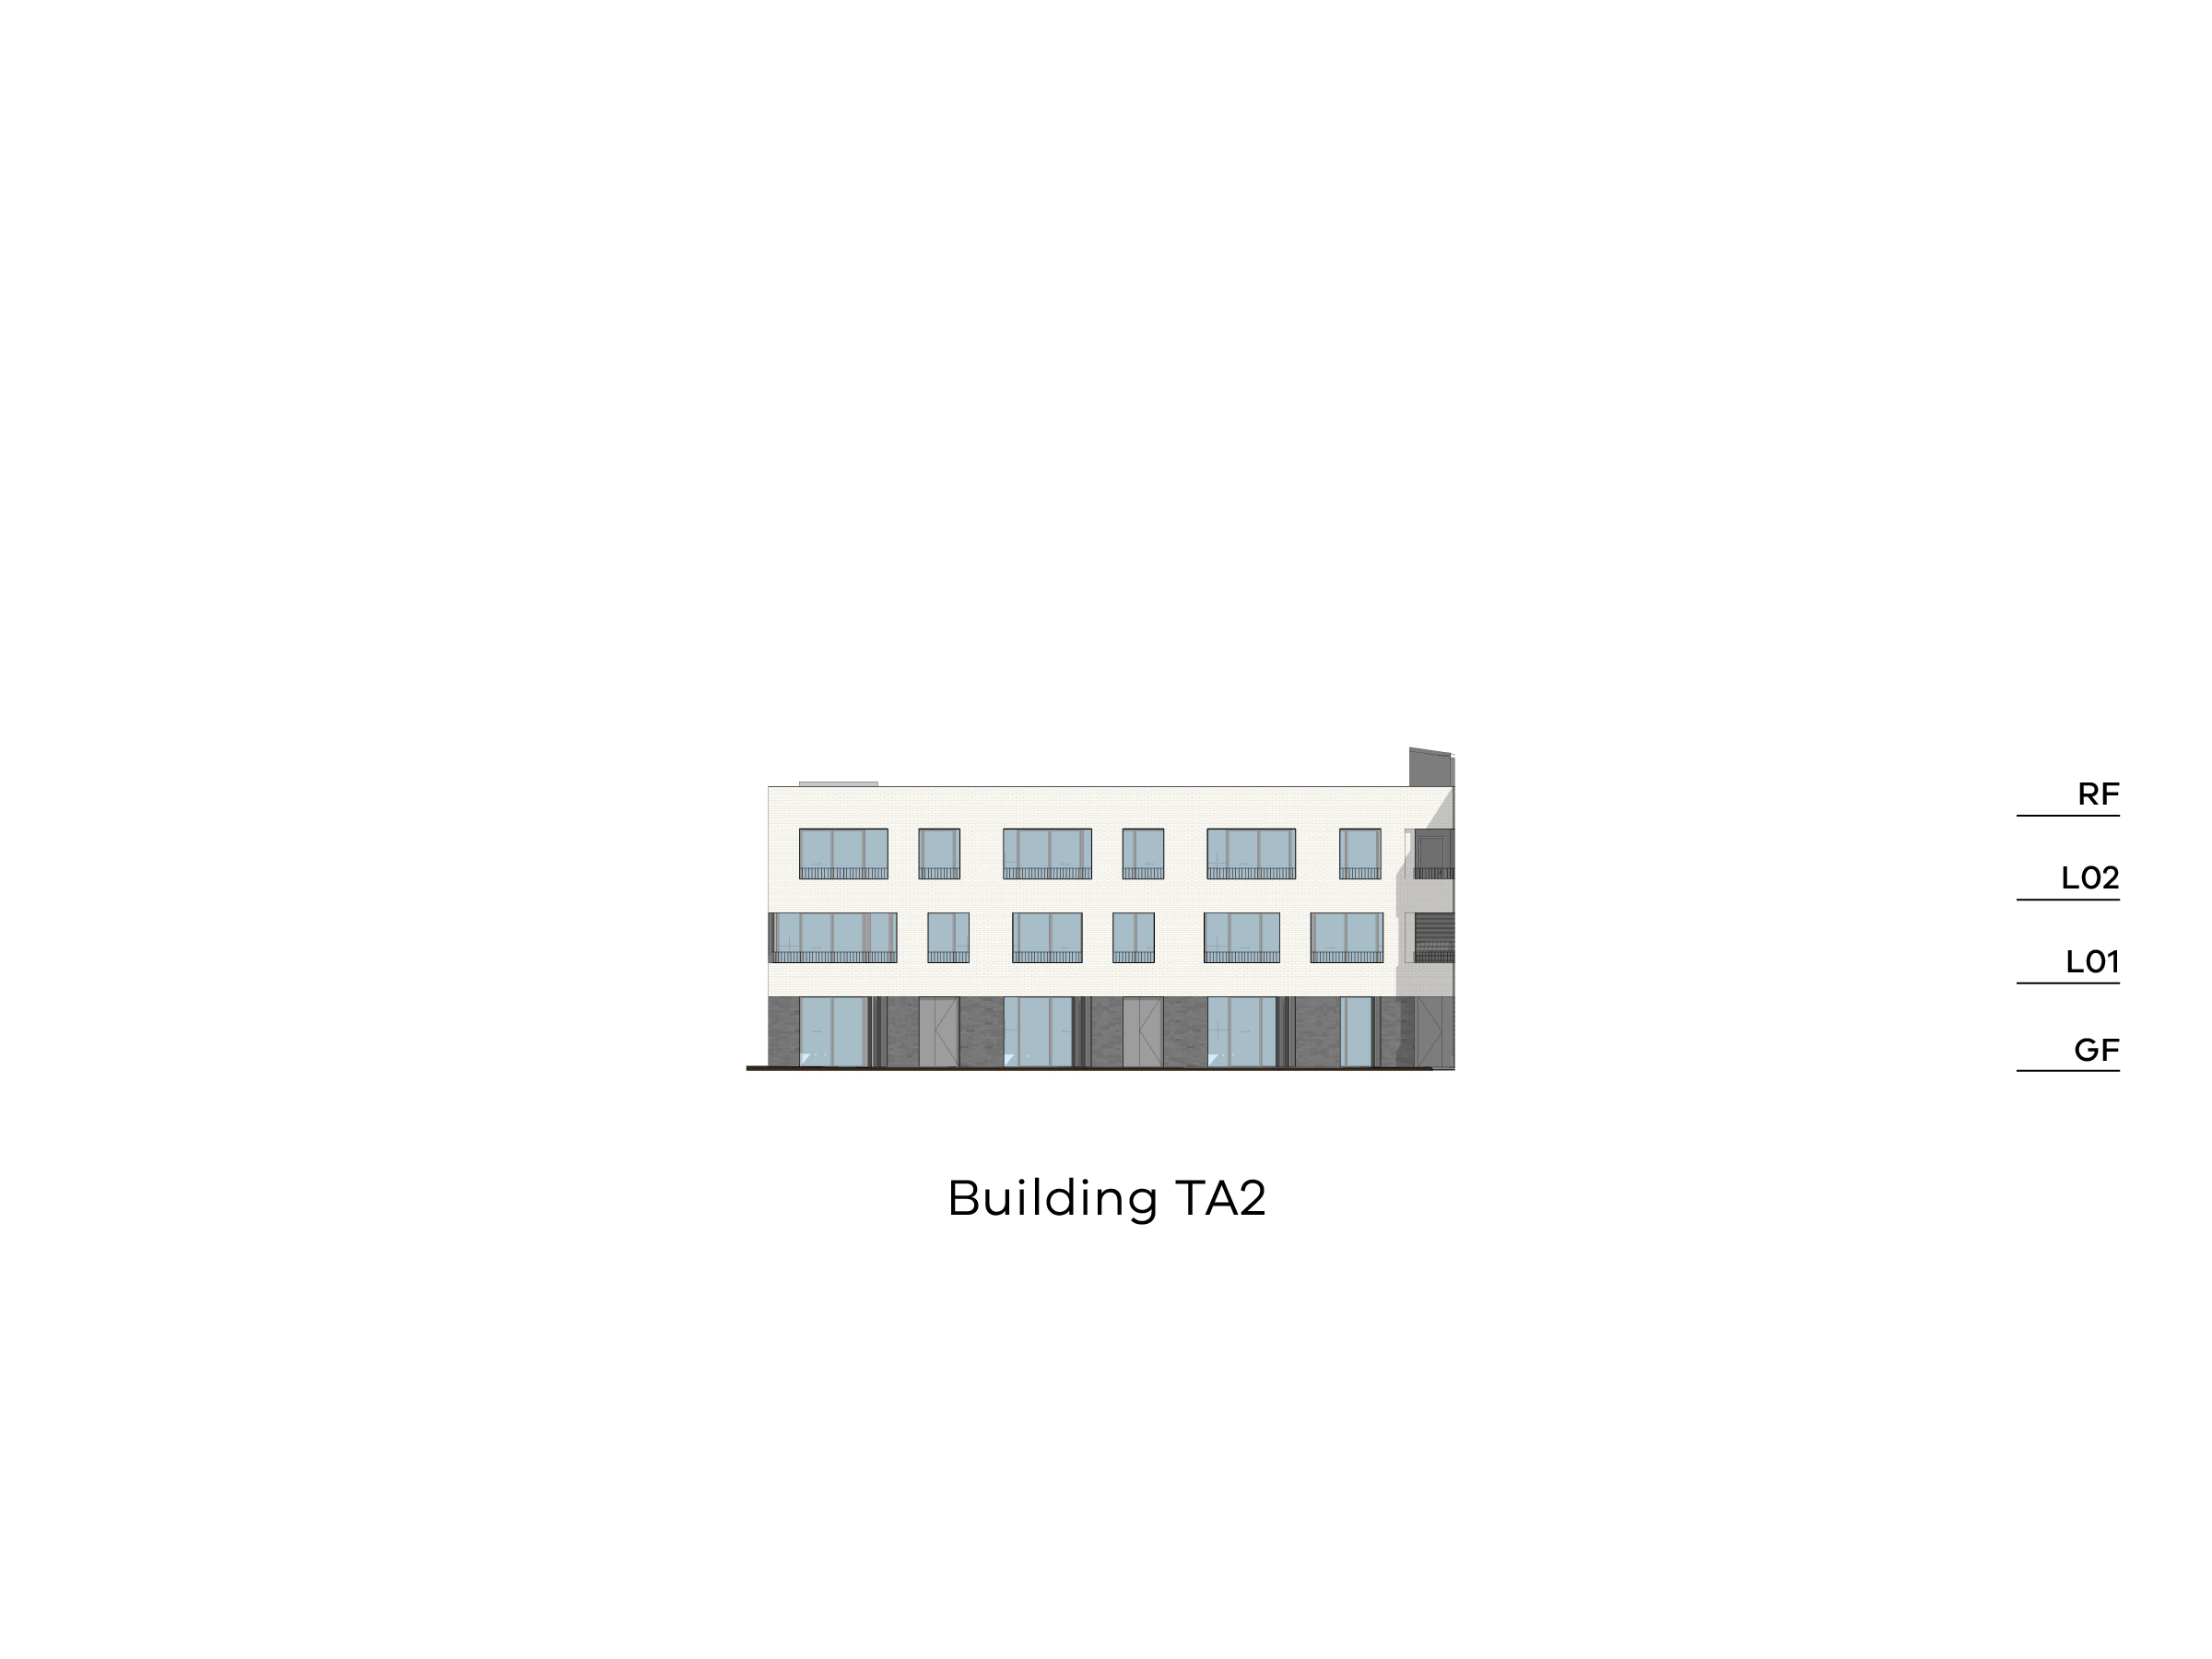 Diagram showing the height of the southern part of building TA2 as seen from St Pius X Primary School looking towards Tarakan Street. Building TA2 has a ground floor, level 1-2 and a flat roof.